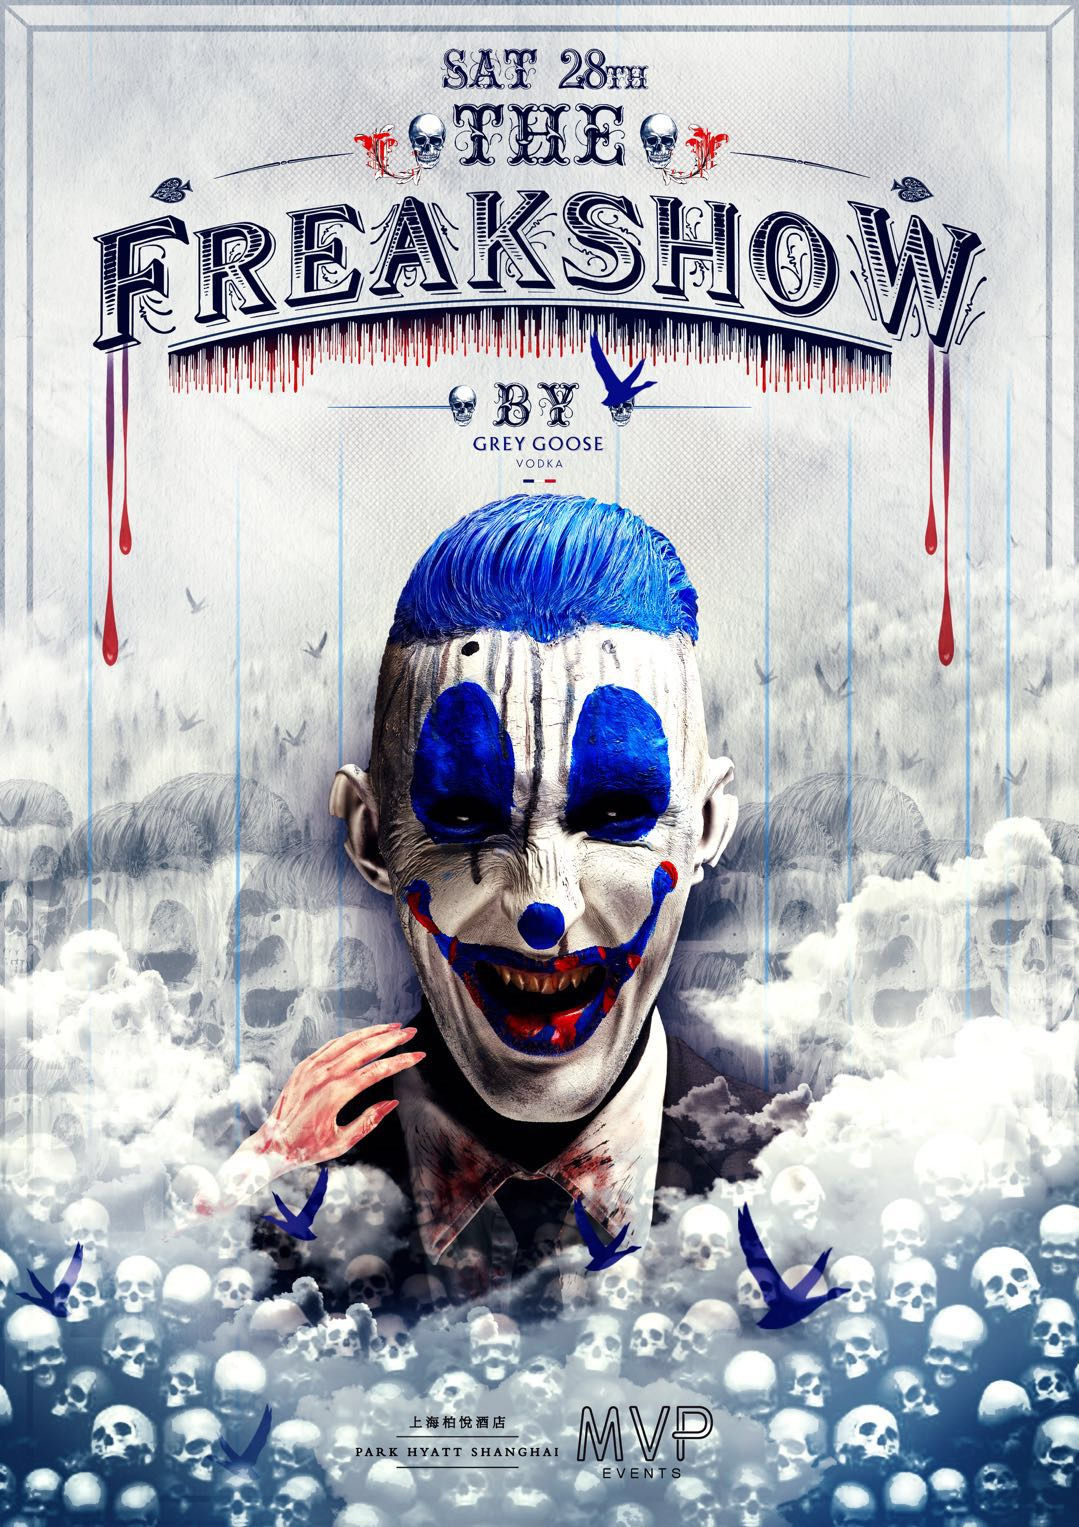 freakshow halloween party powered by grey goose at park